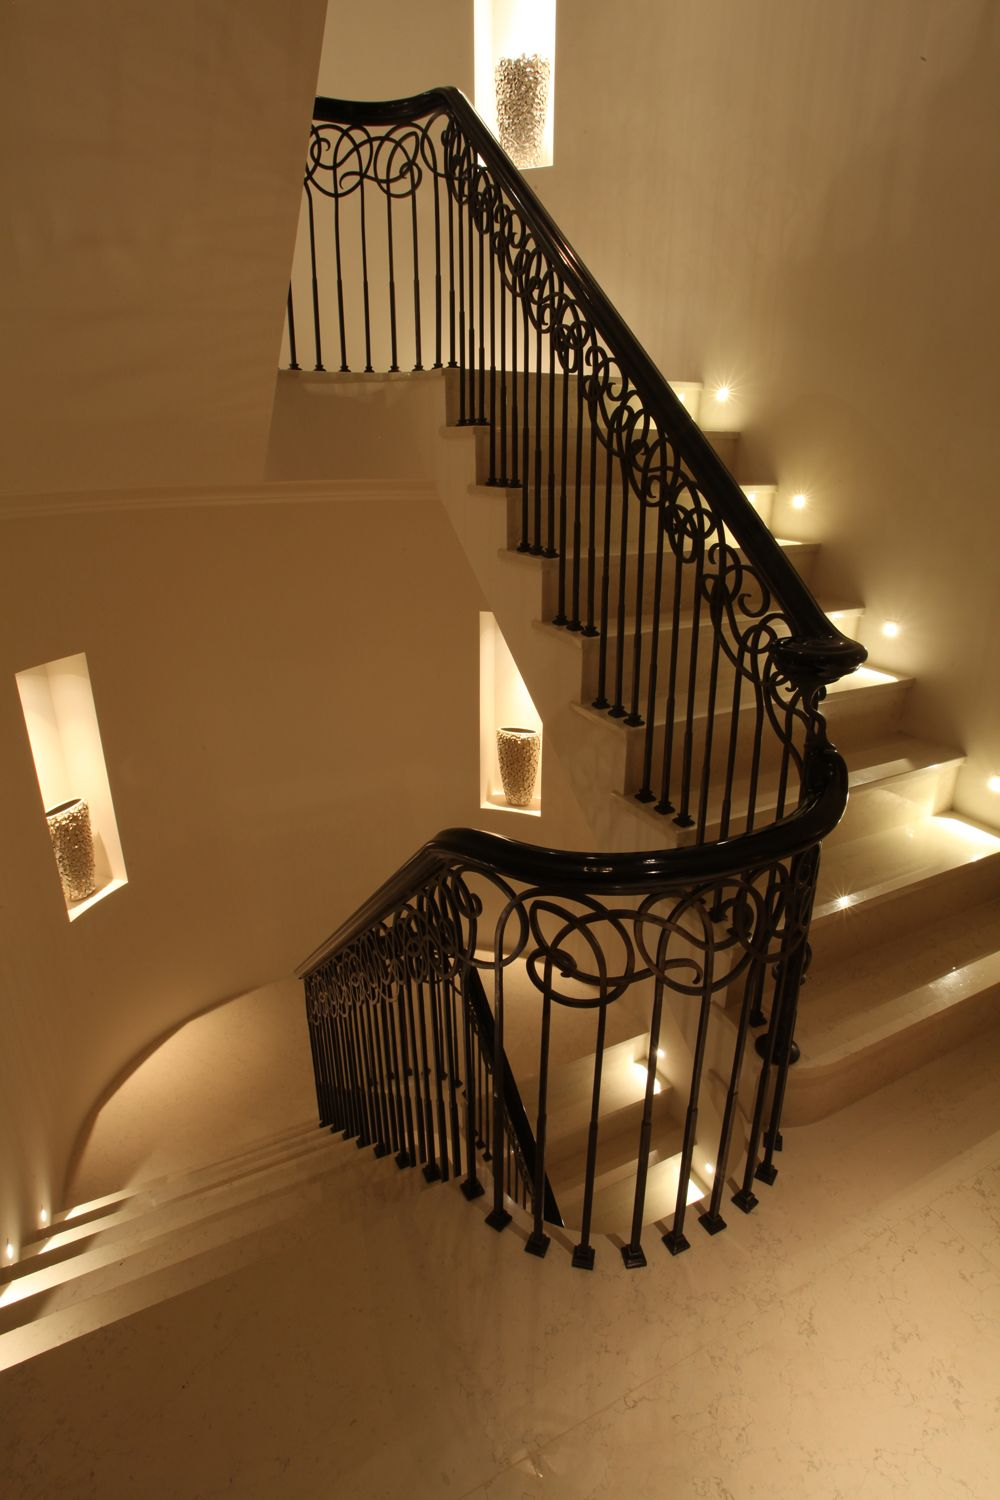 Lighting Basement Washroom Stairs: Perfectly Lit Staircase Lighting By John Cullen